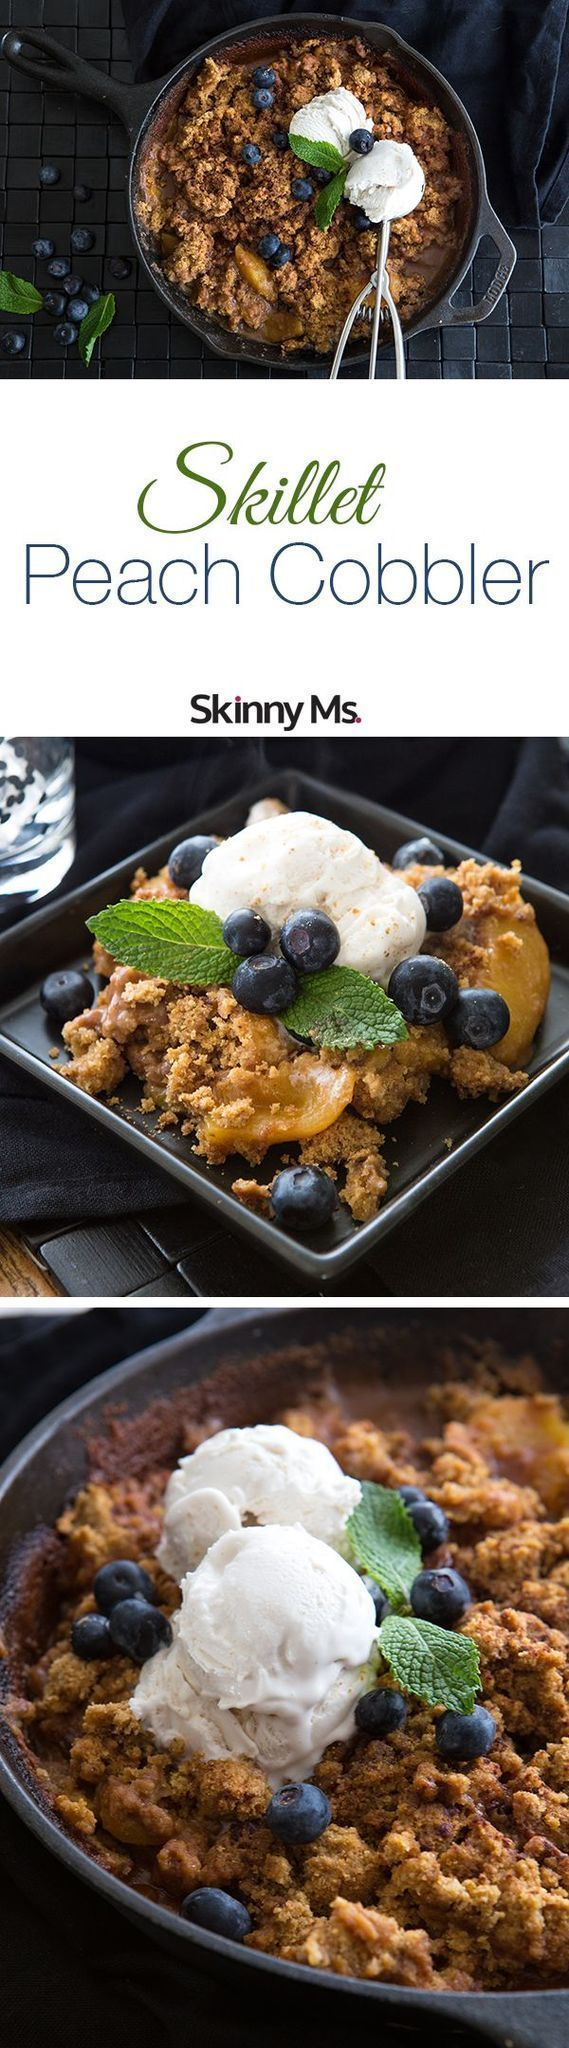 This Skinny Ms. Skillet Peach Cobbler is delectable! #SkinnyMs